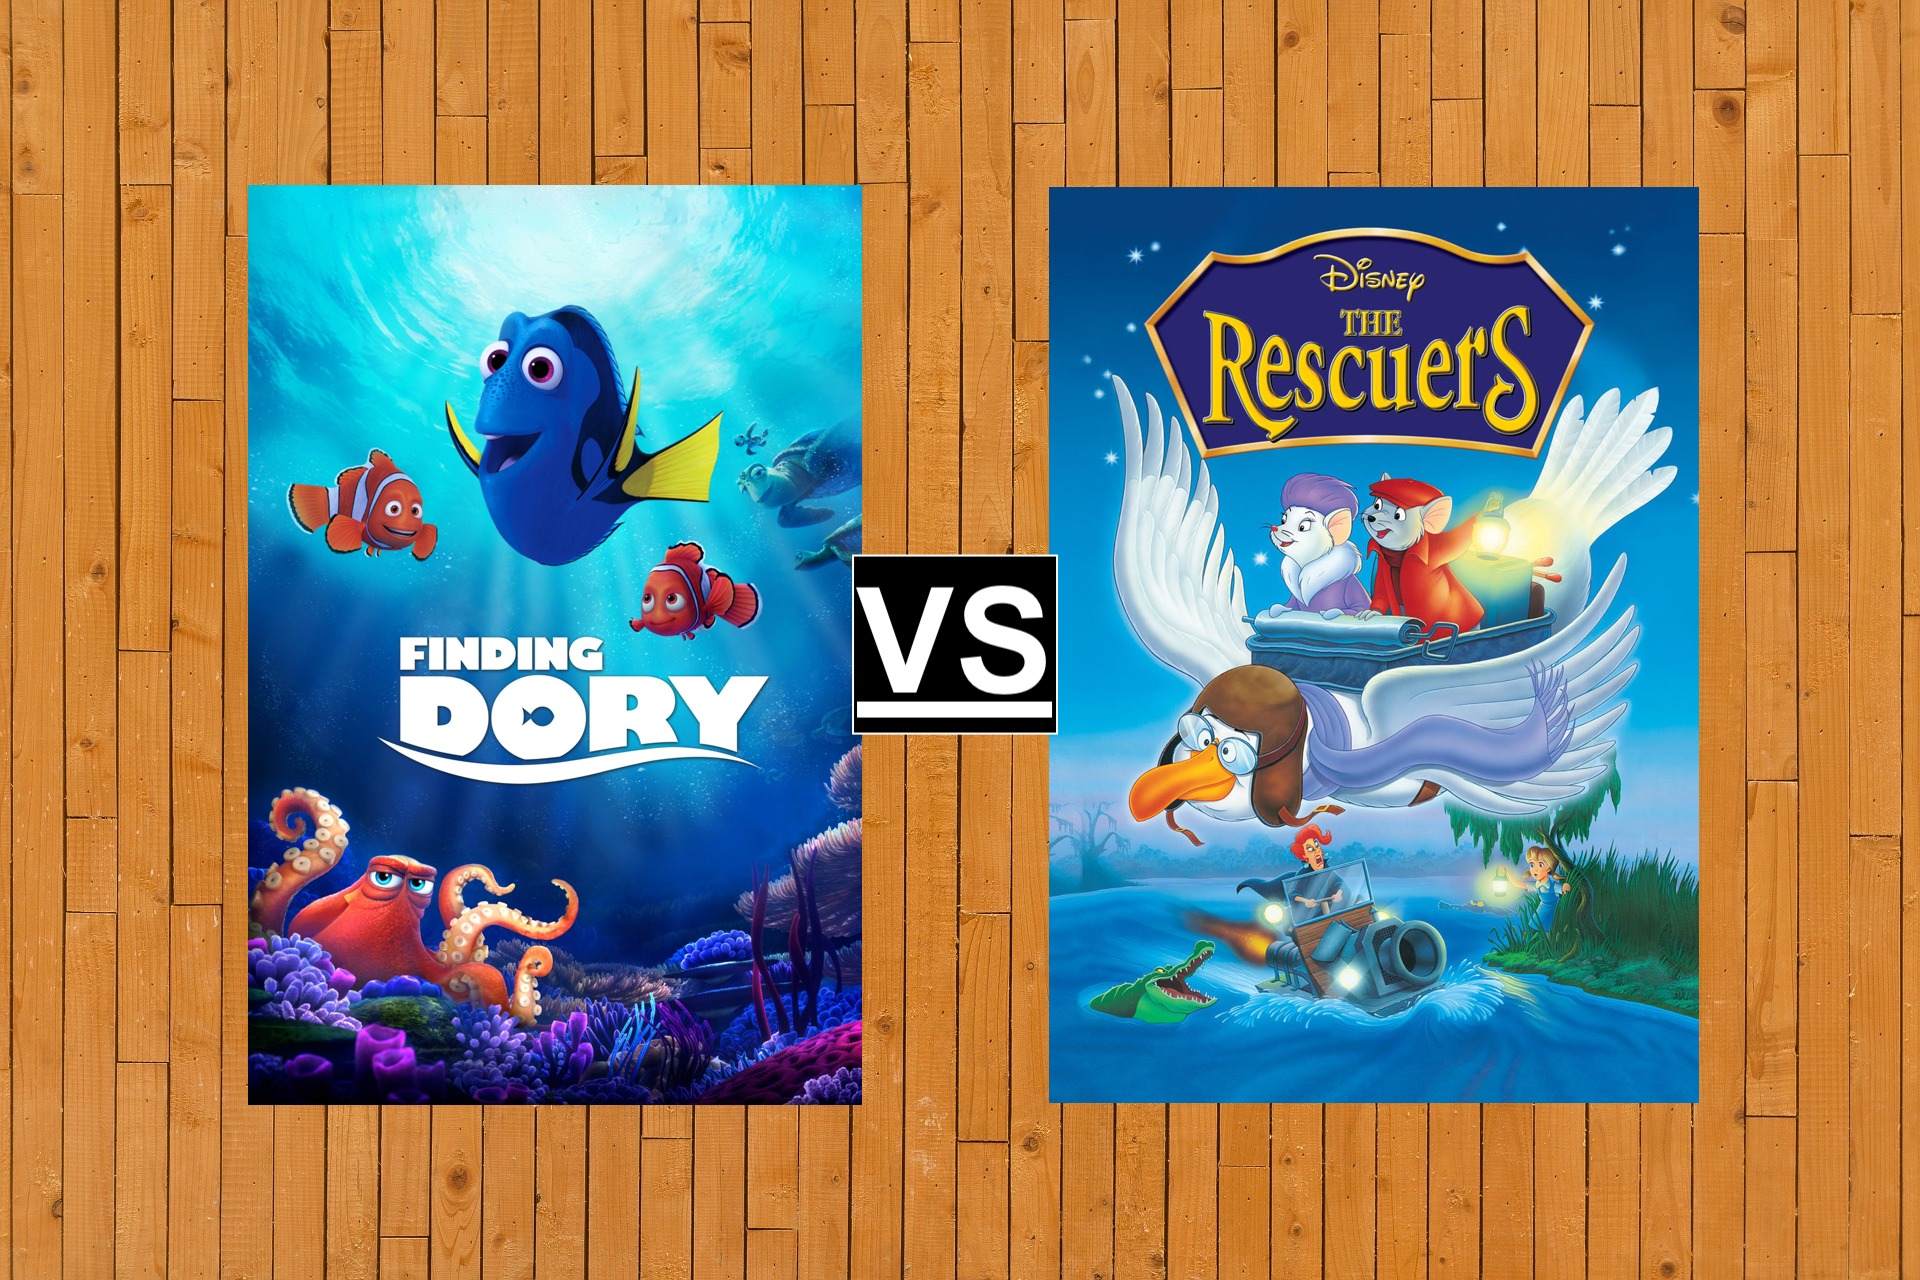 20 DISNEY BATTLES Finding Dory Vs Rescuers